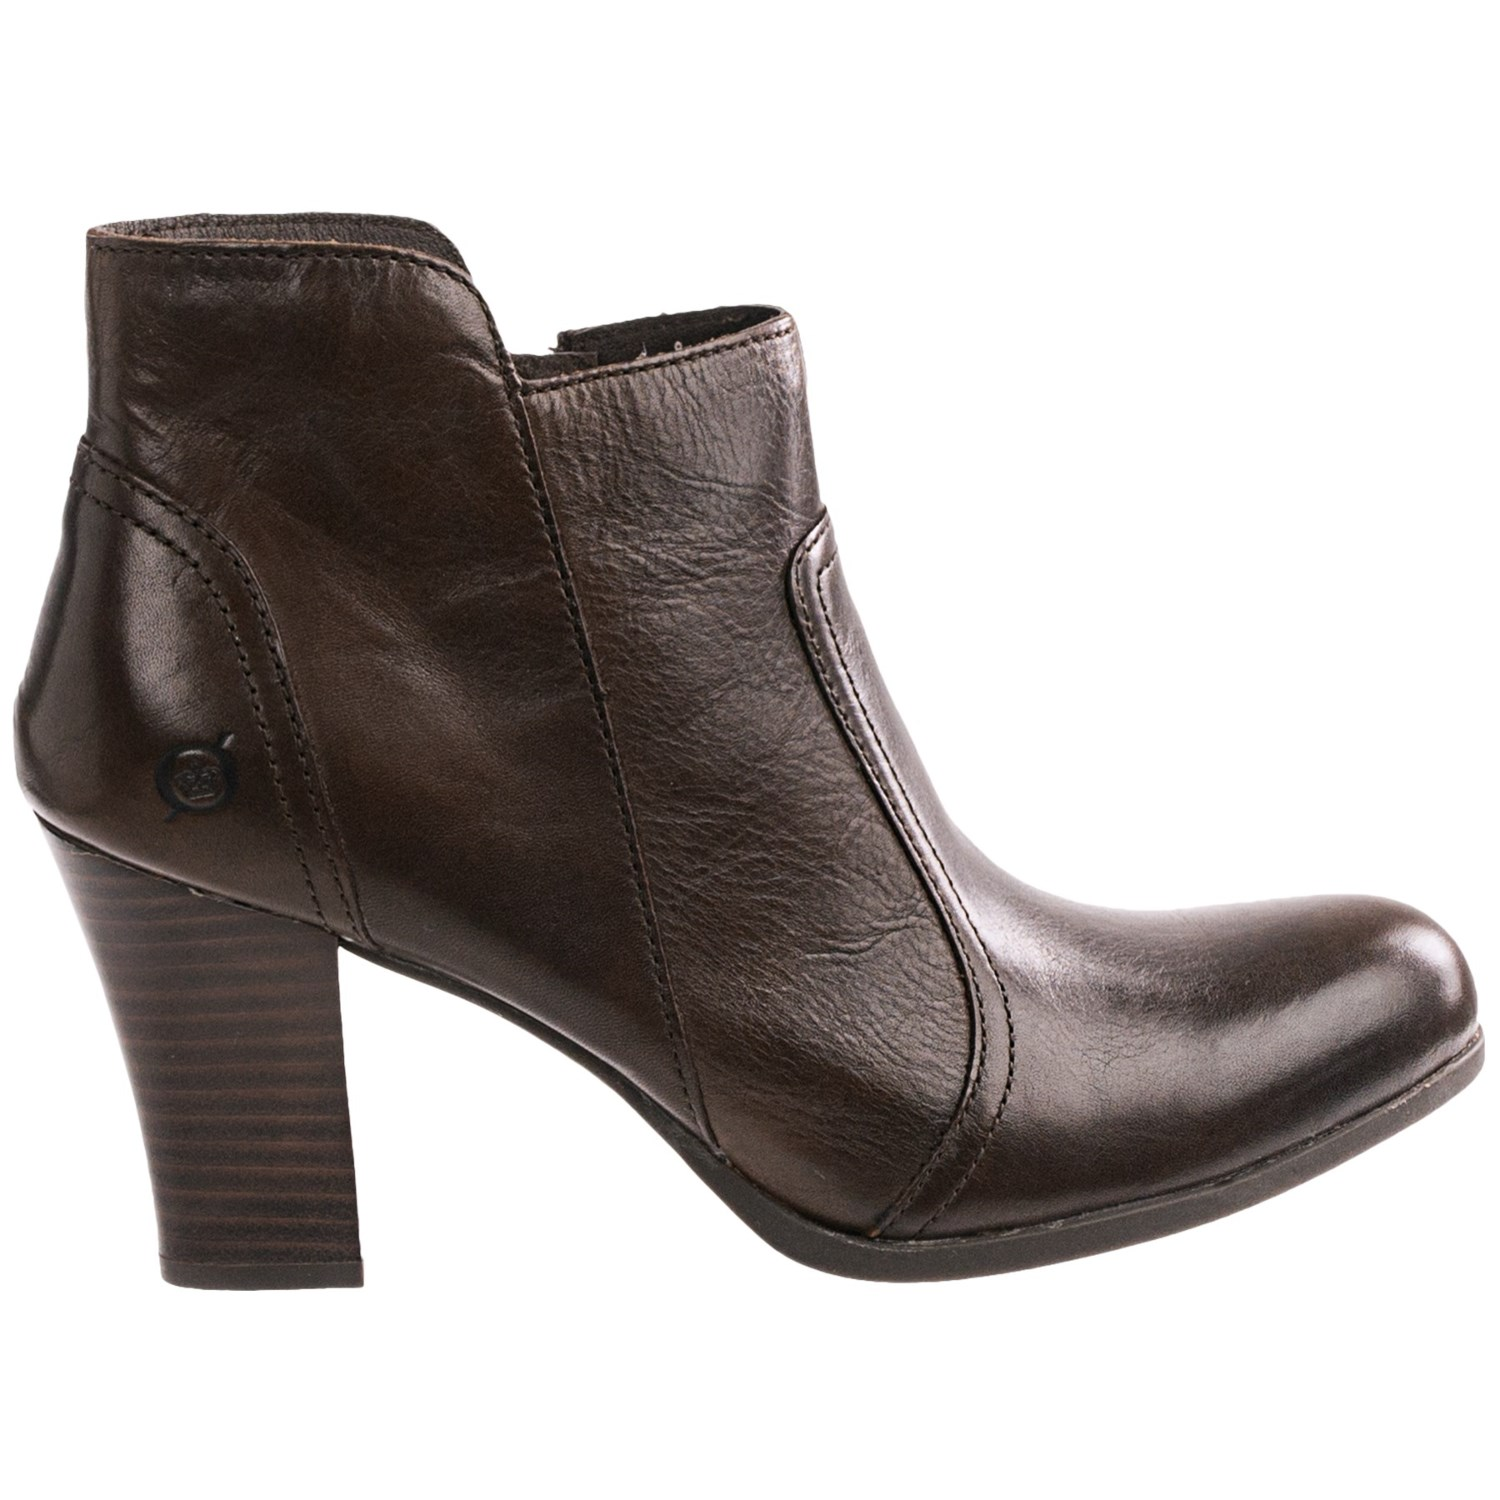 born ankle boots for 7075r save 30